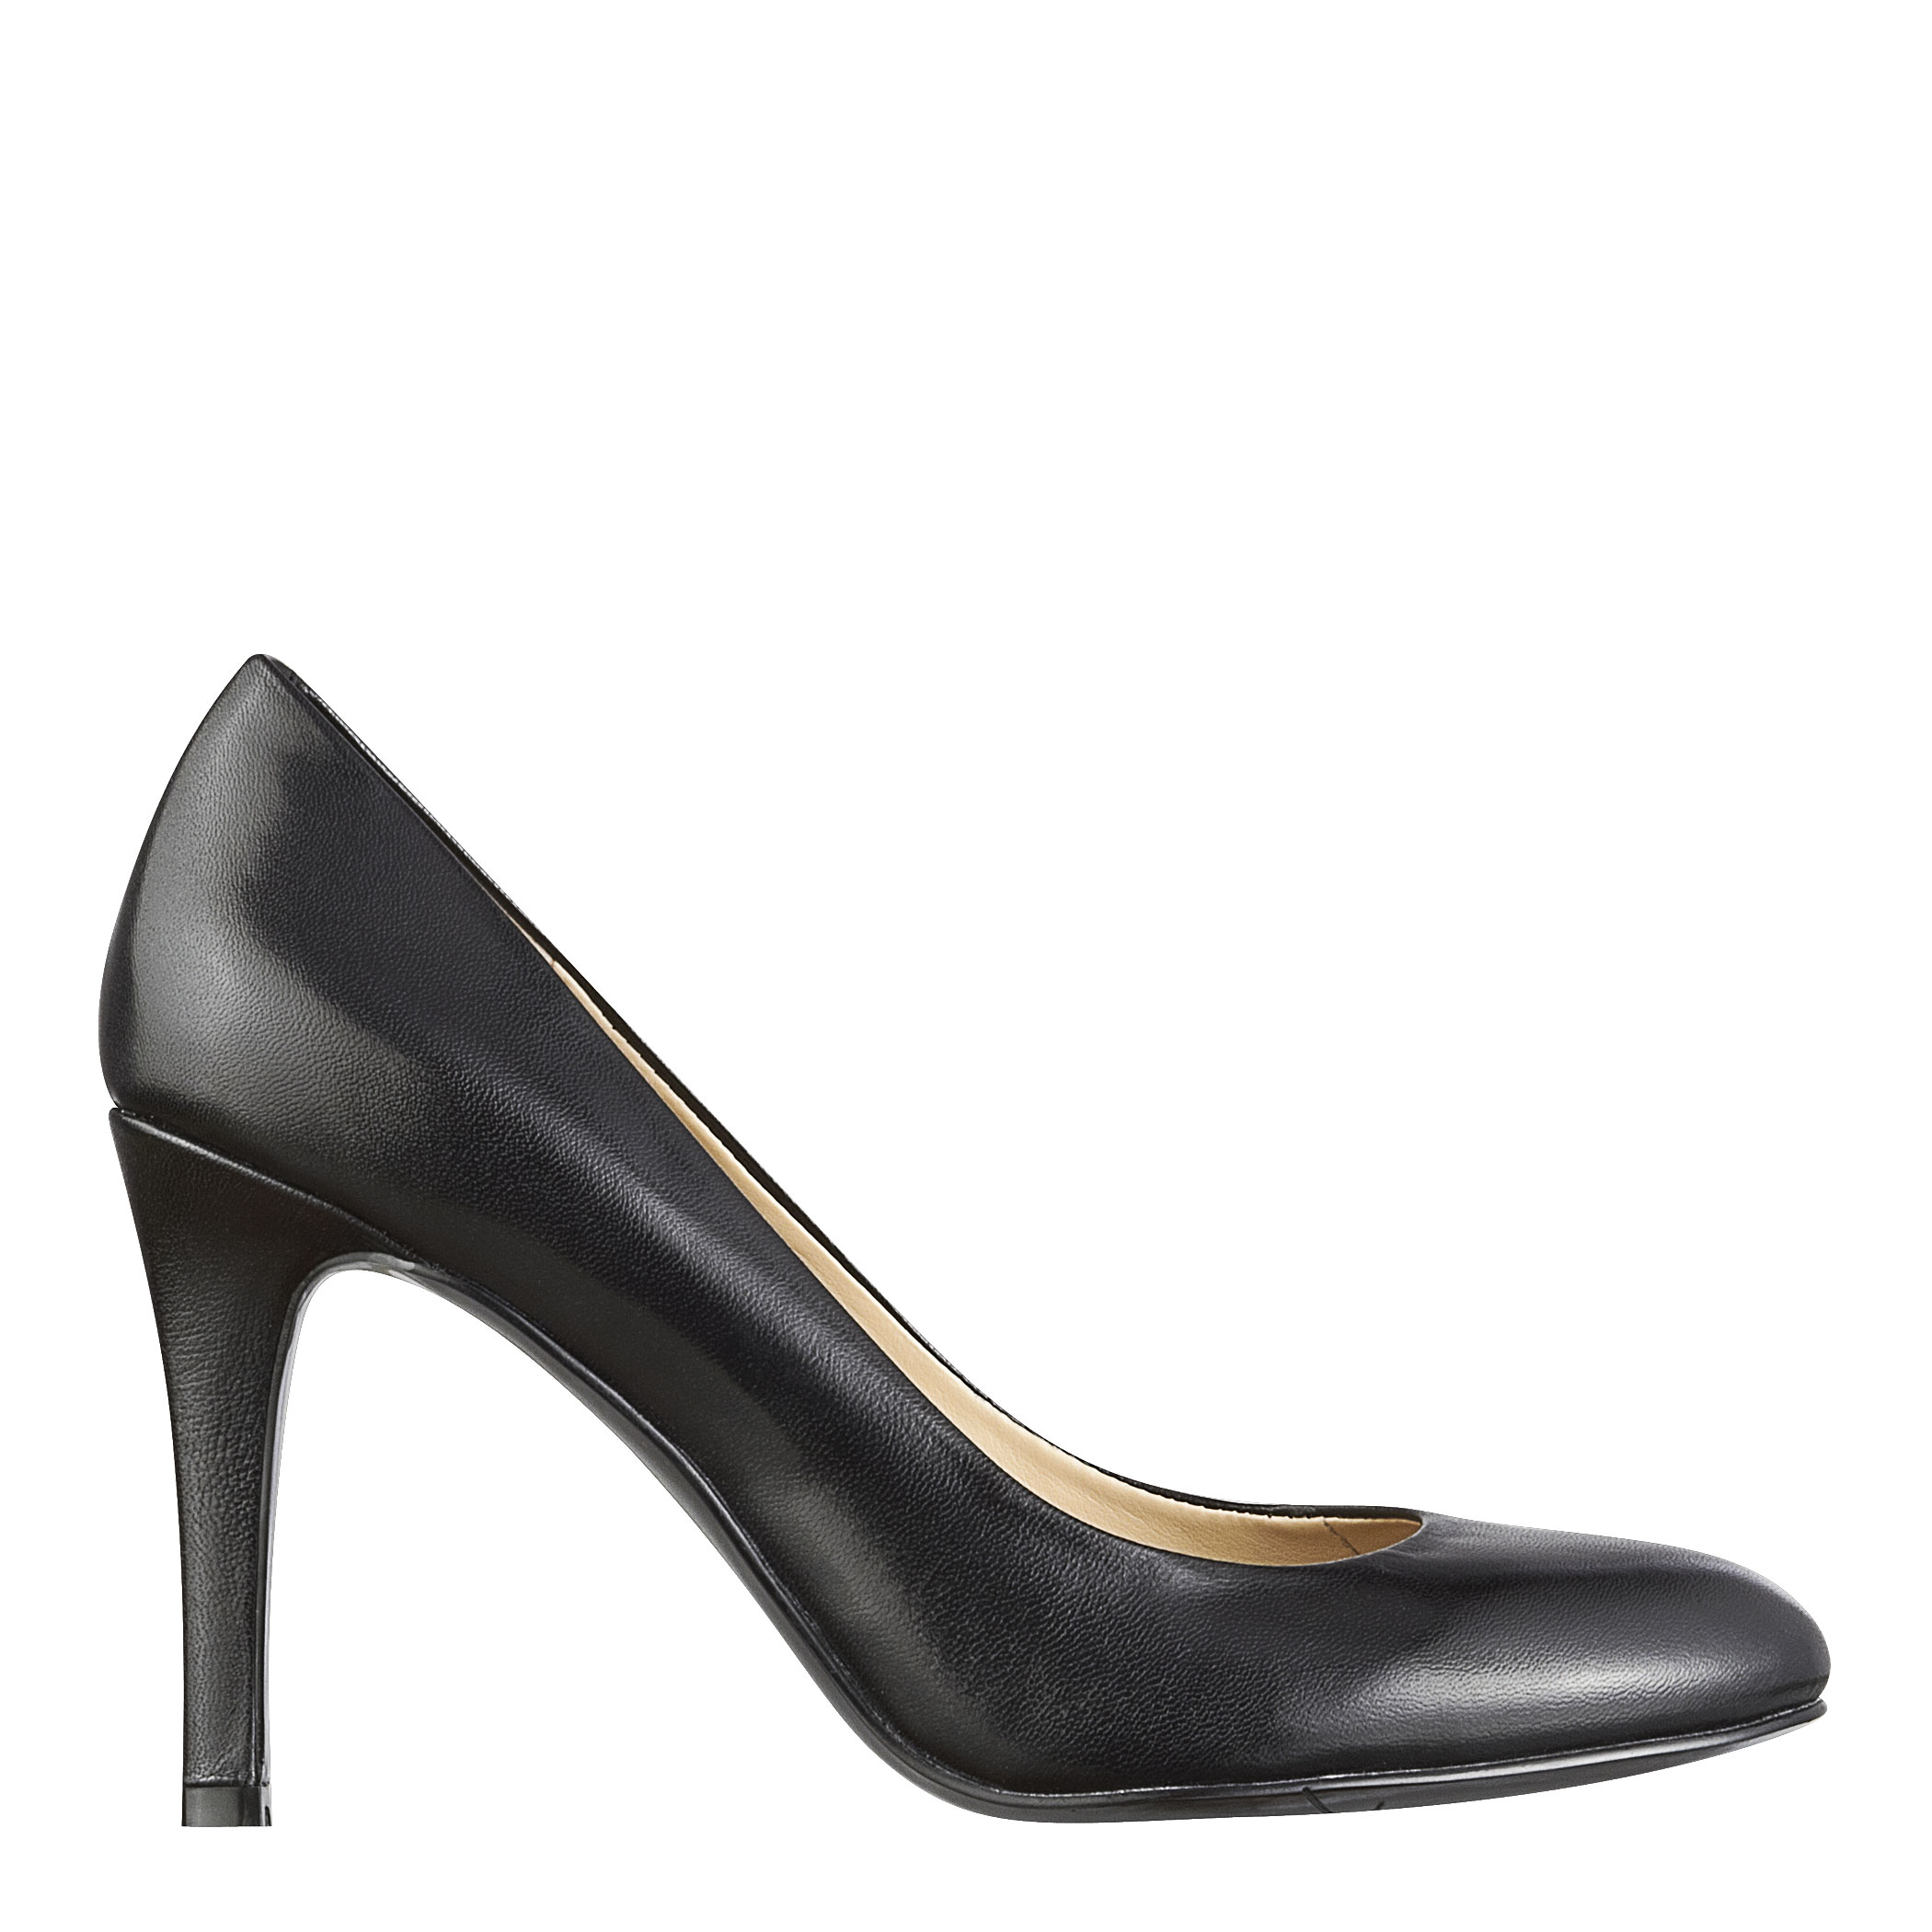 5cc3849d9 Nine West Caress Round Toe High Heels in Black - Lyst